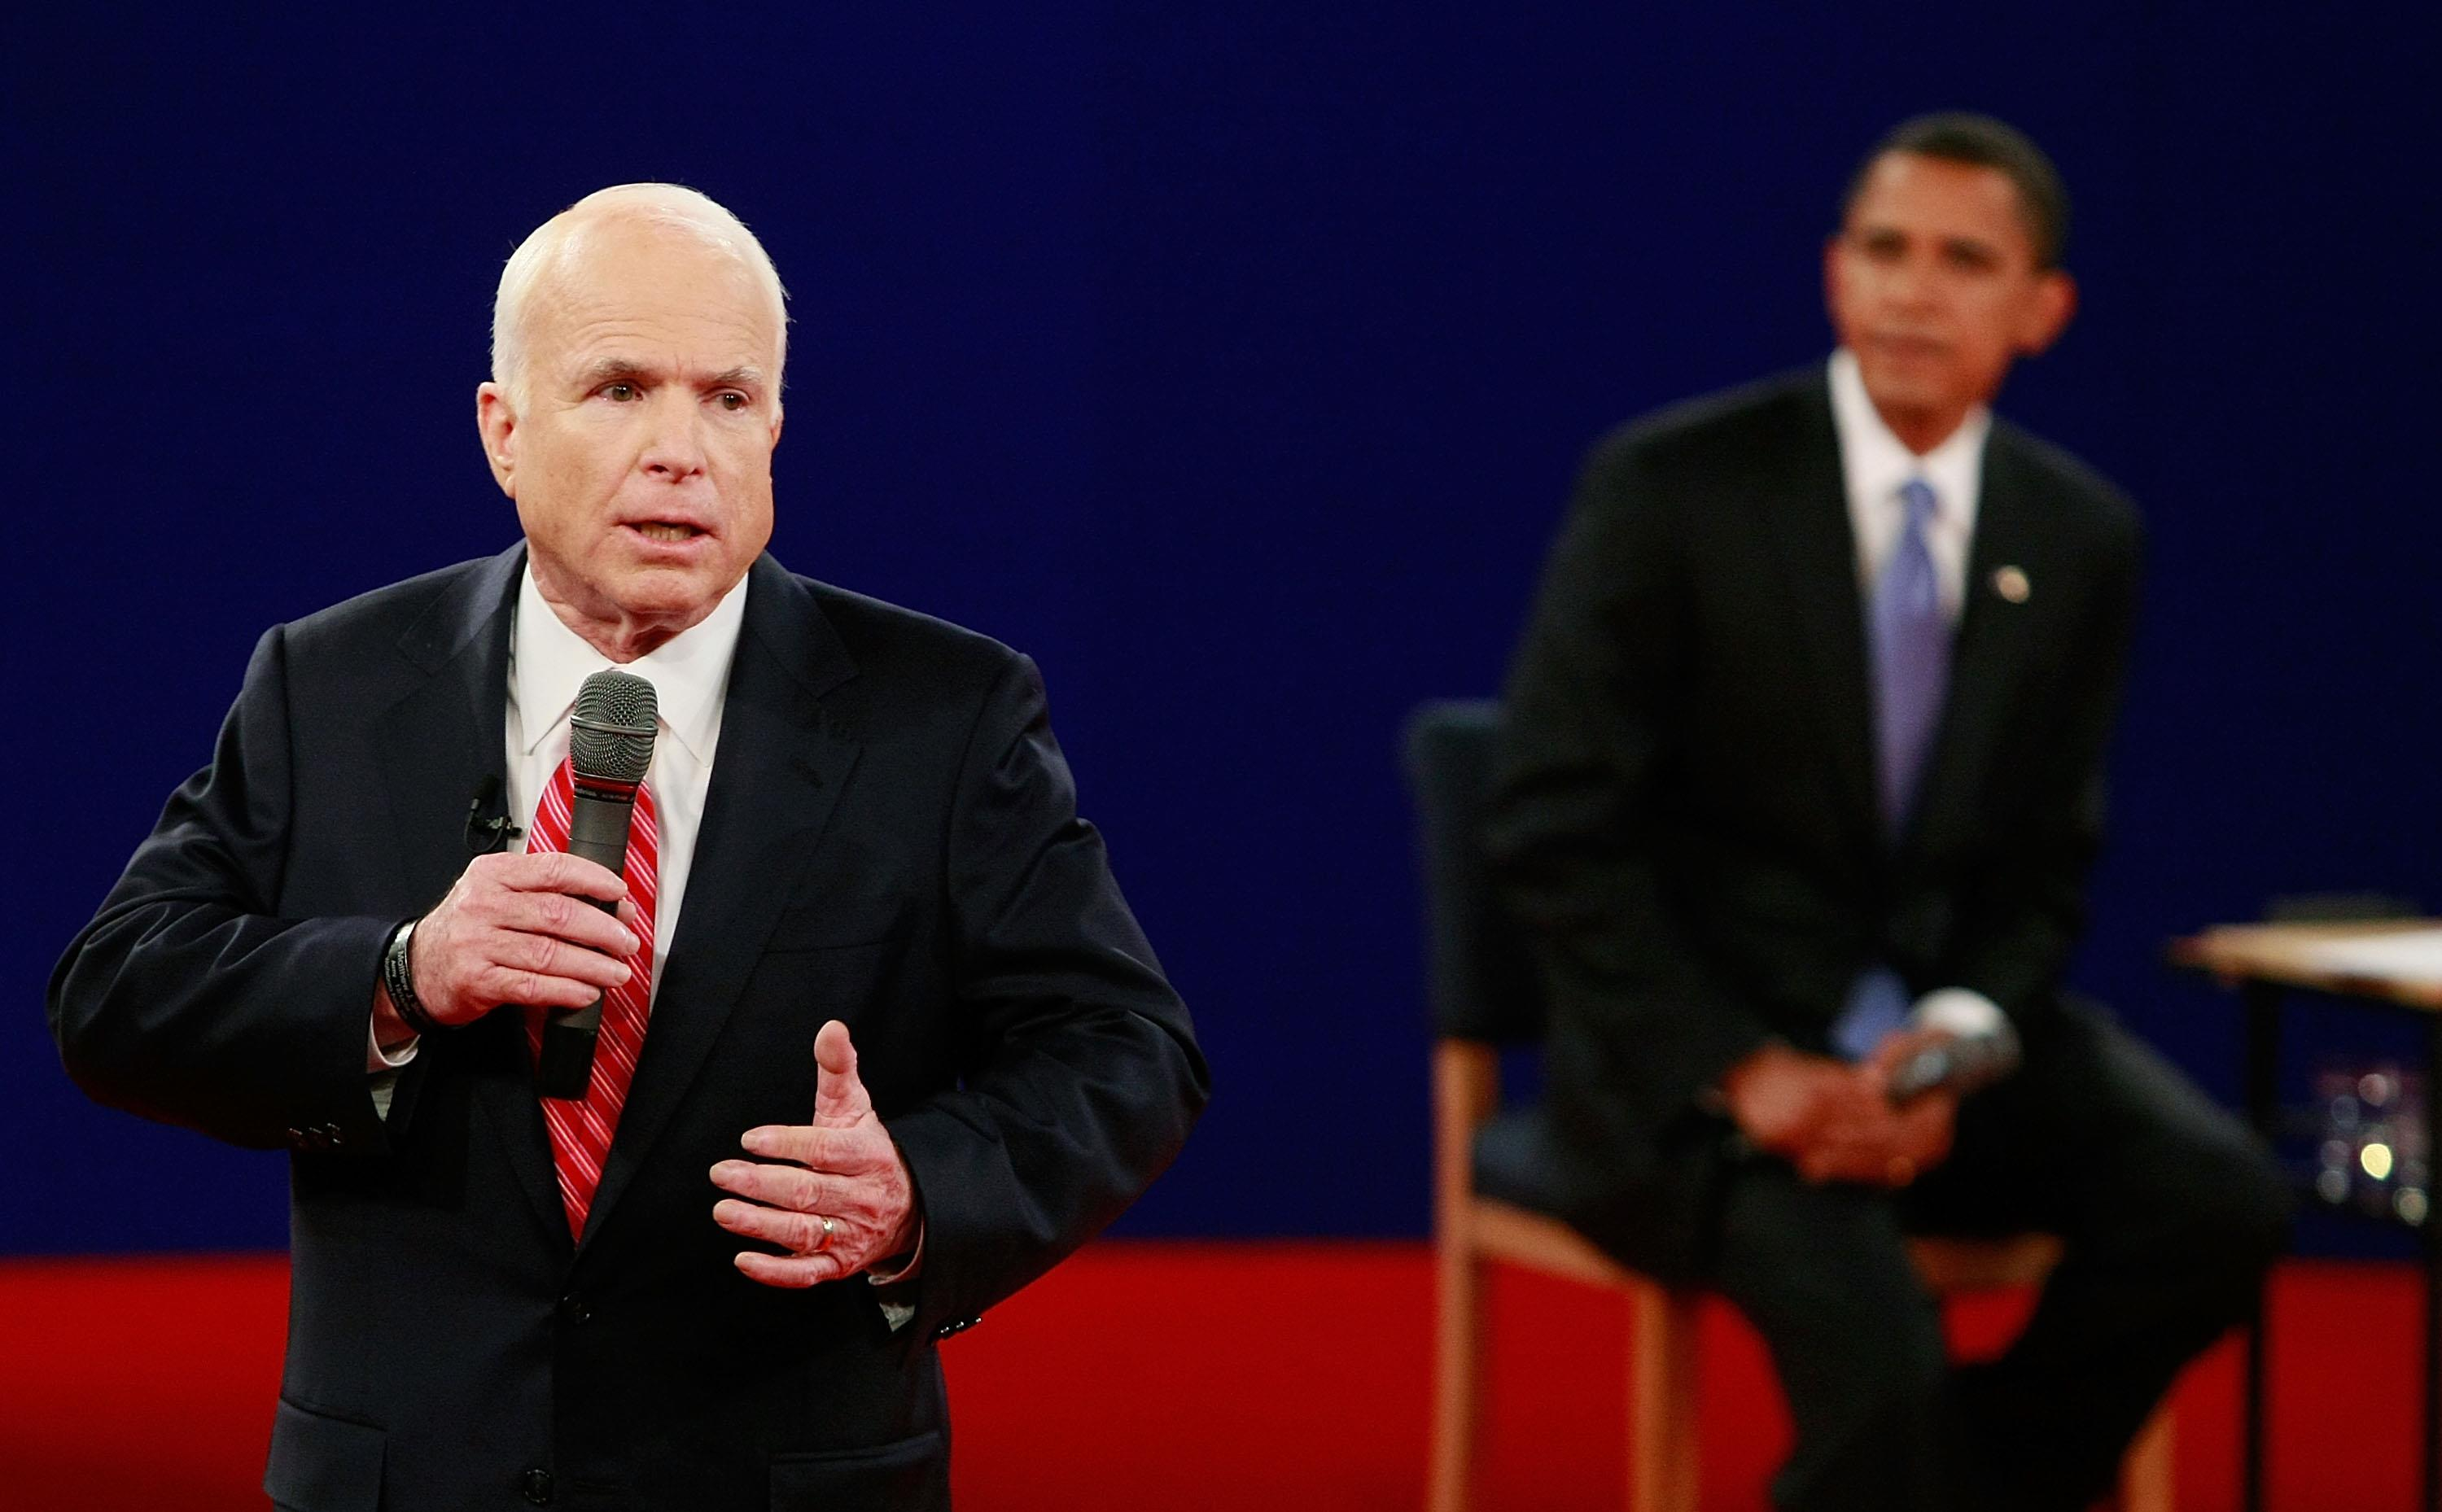 Image: McCain And Obama Spar In Second Presidential Debate